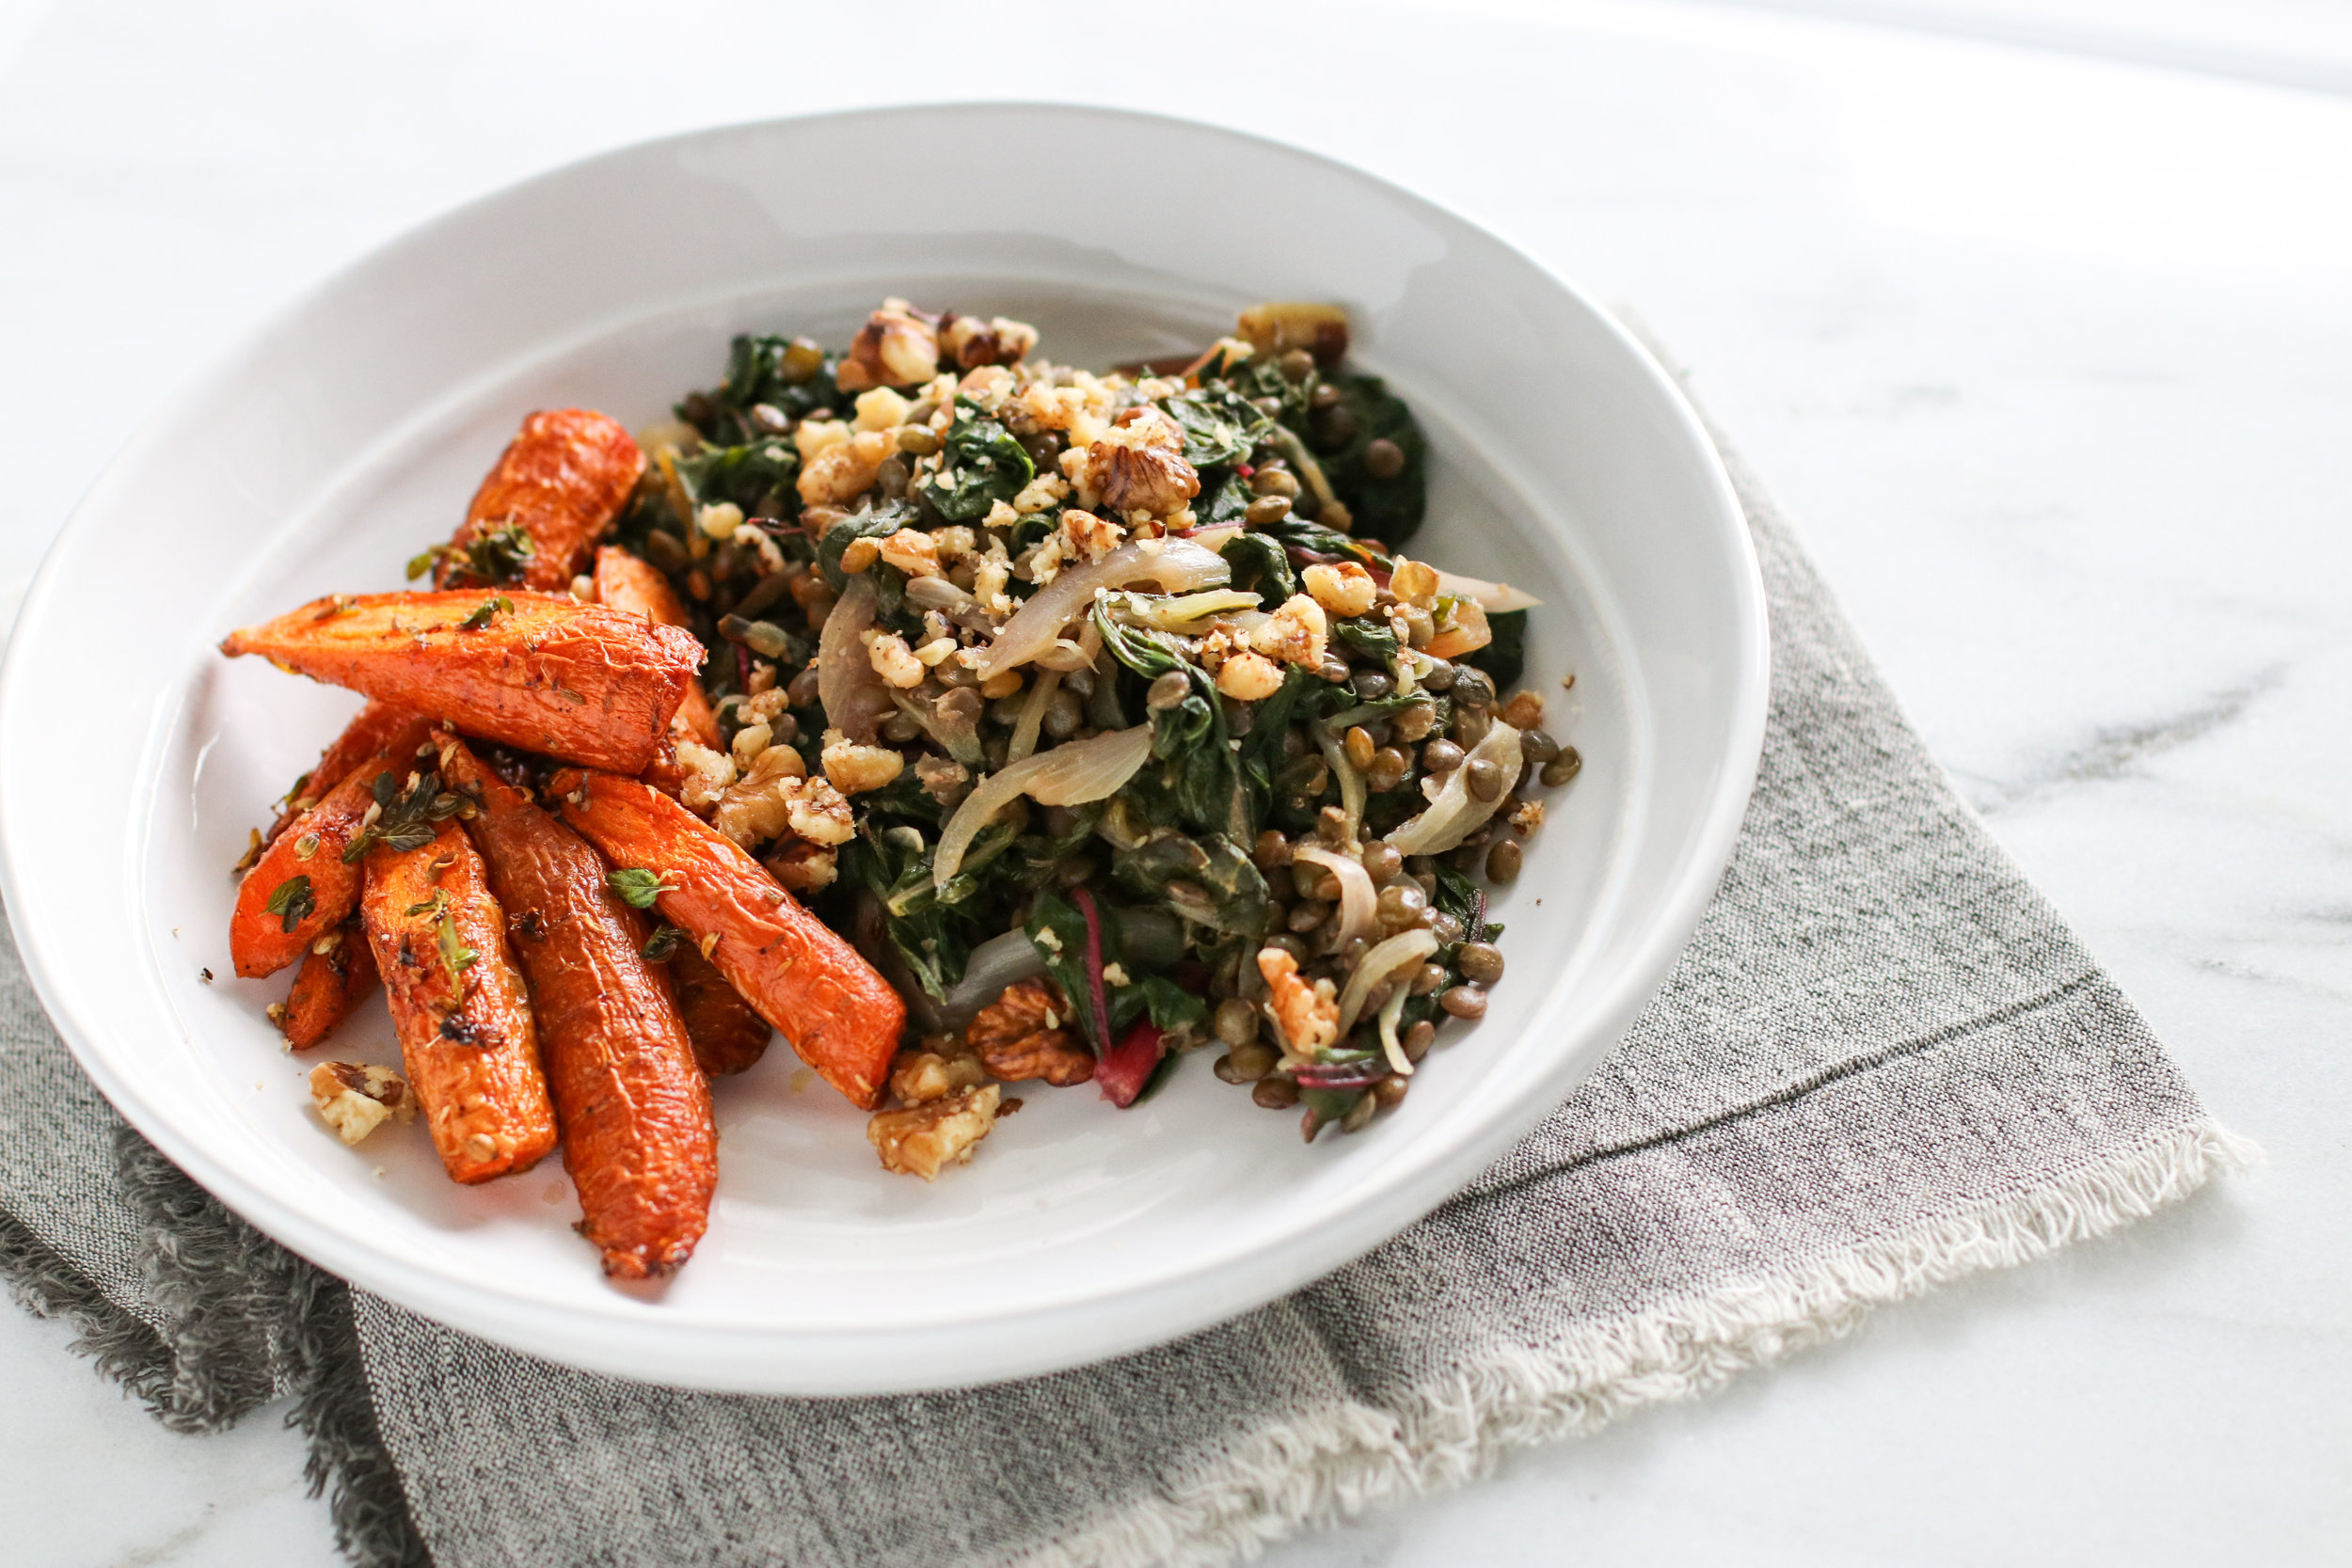 Lentils mixed with Sautéed Swiss Chard and Red Onion with a side of Honey Thyme Roasted Carrots